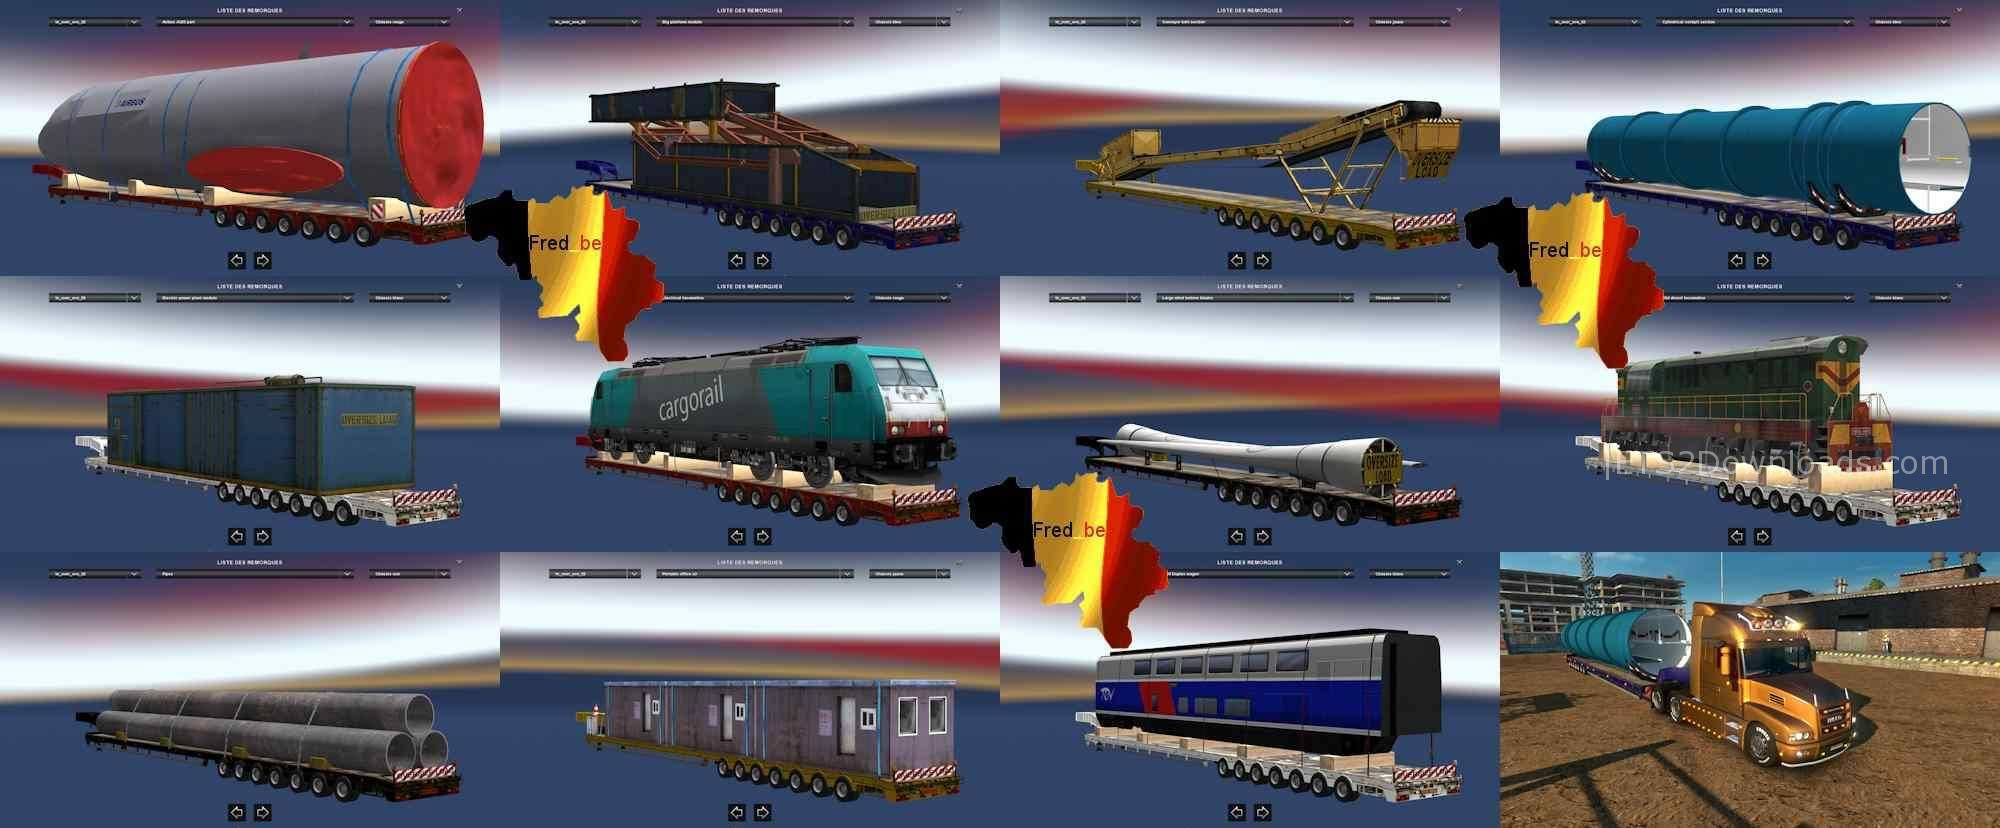 oversize-trailers-1